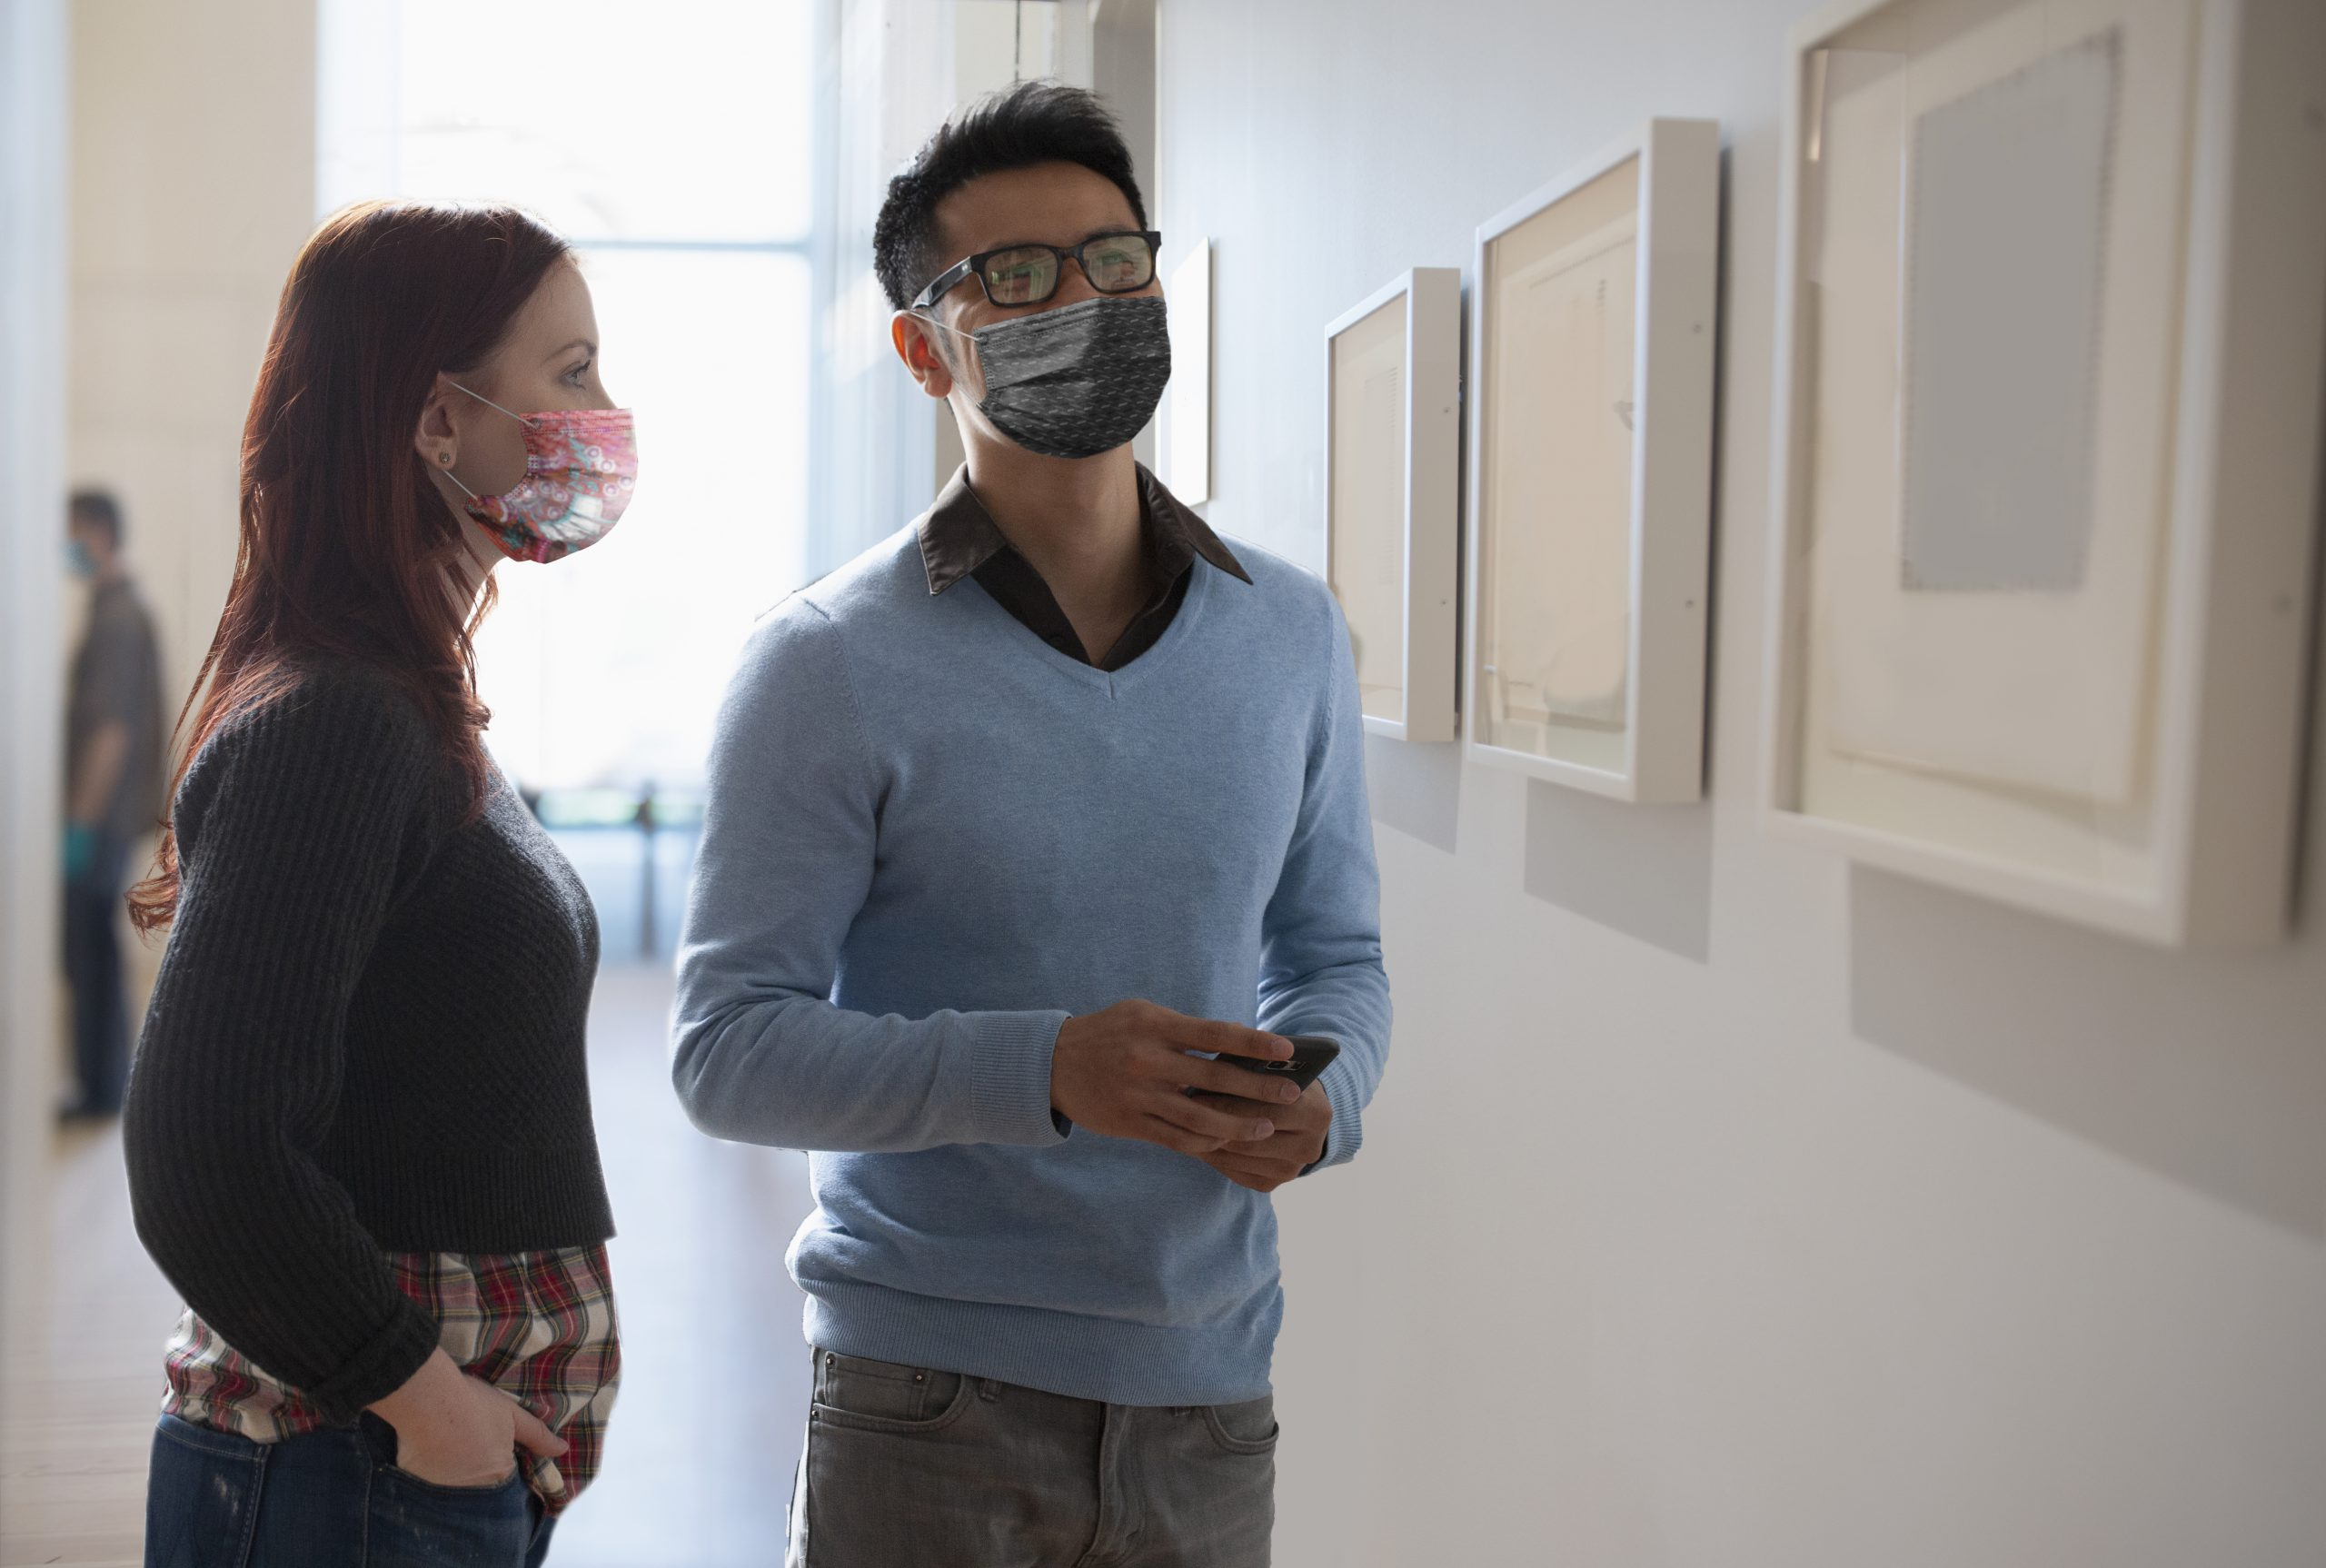 Two adults standing in front of a wall with a row of framed art.